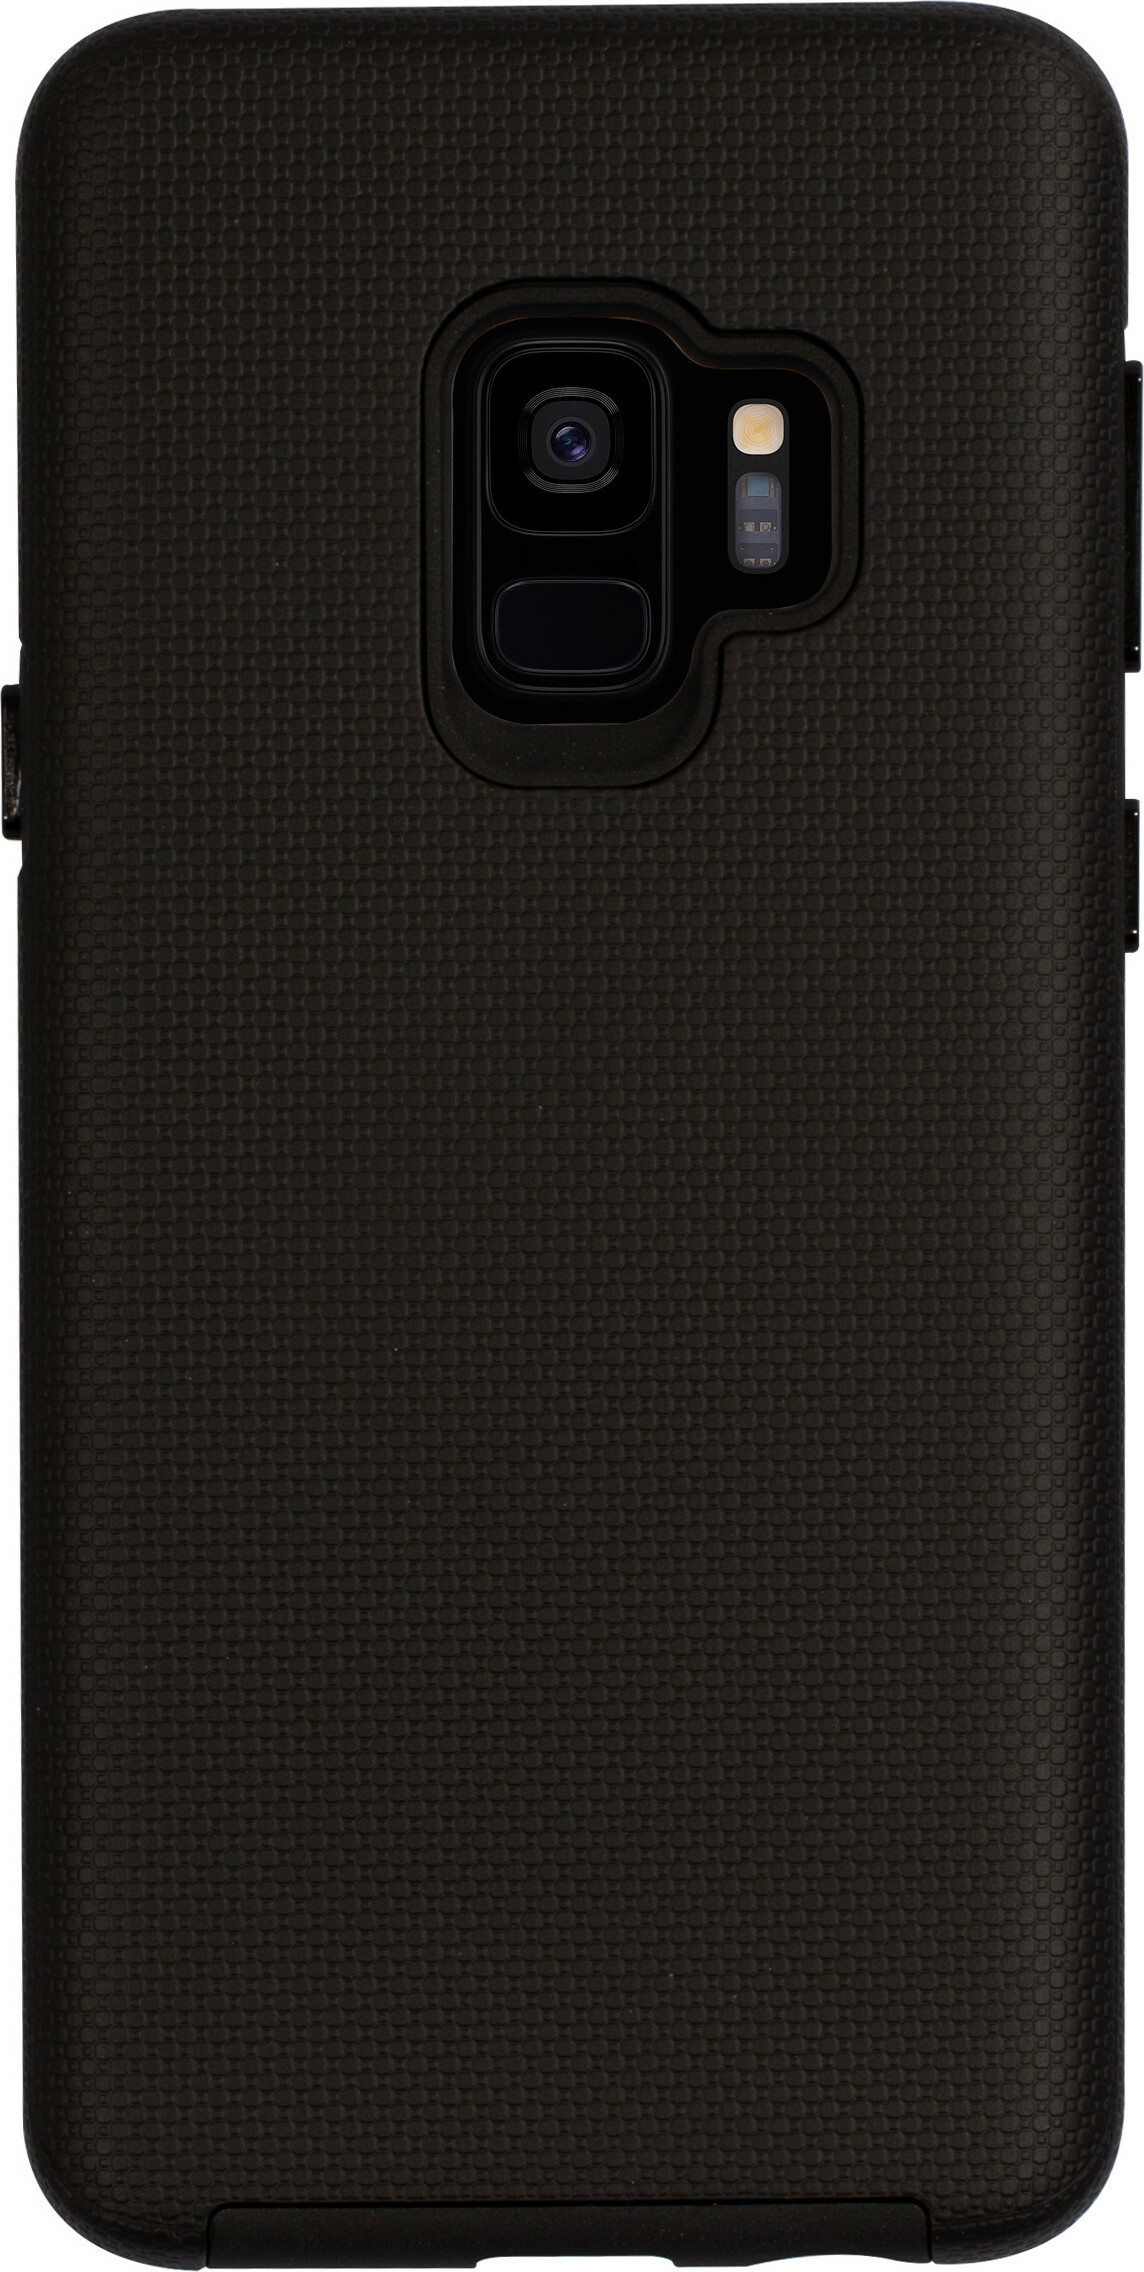 Mobiparts Rugged Tough Grip Case Samsung Galaxy S9 Black